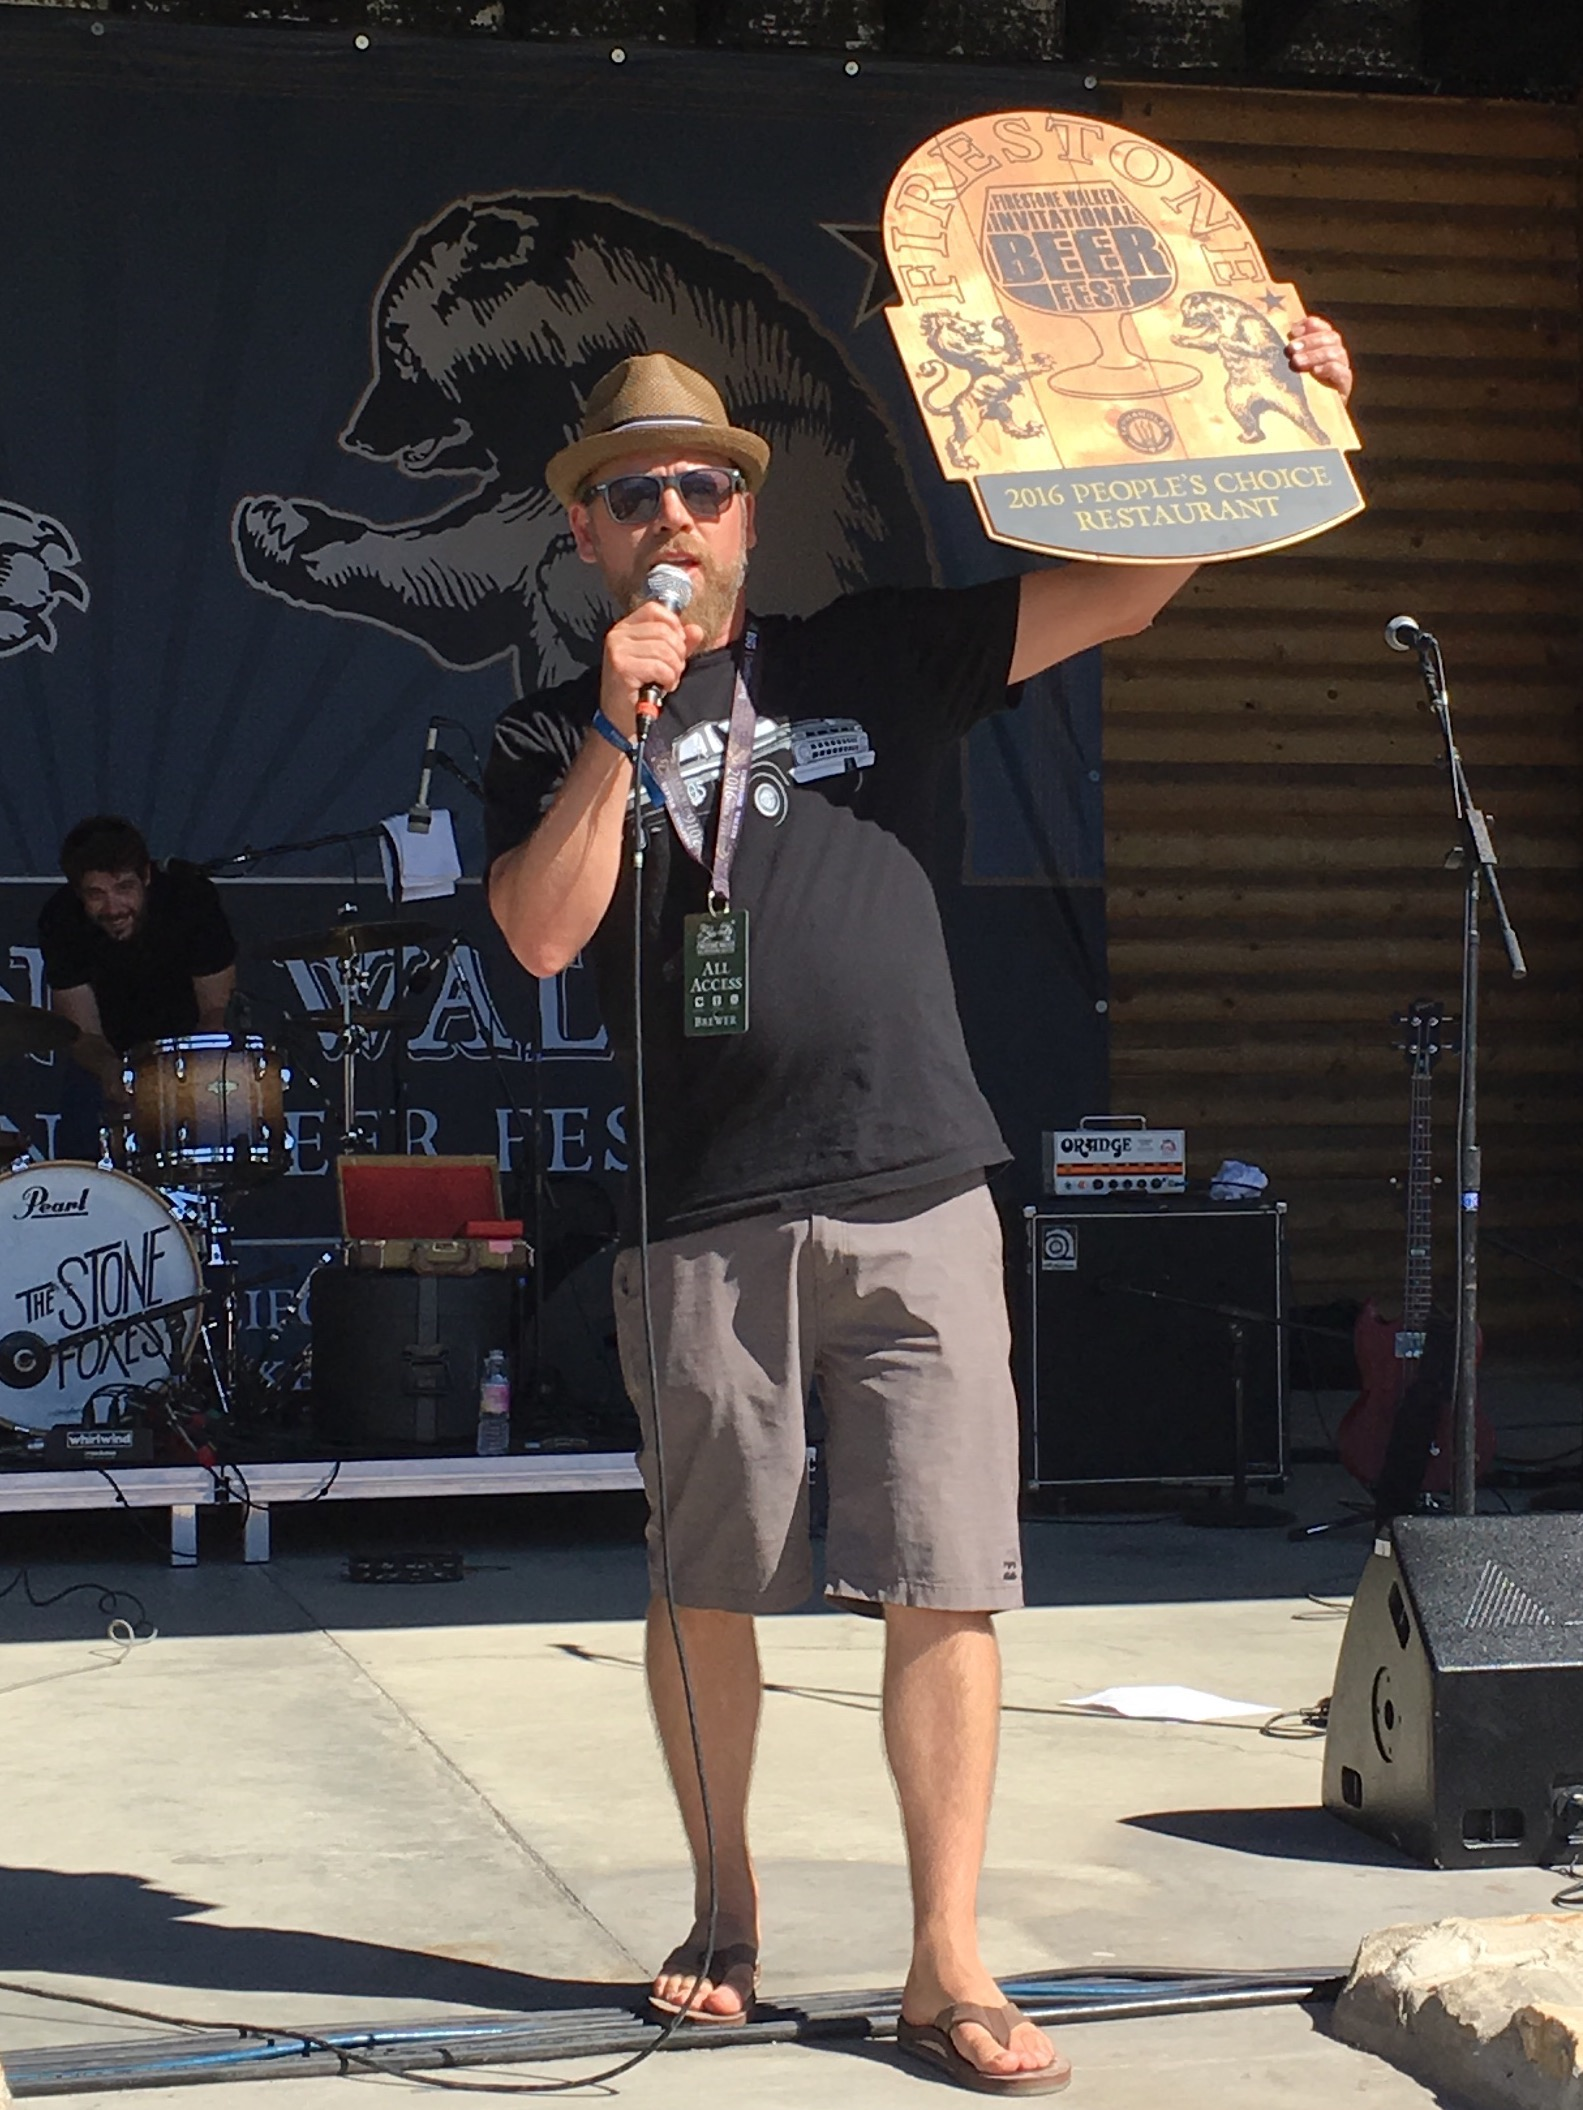 Matt Brynildson holds up the award for the 2016 People's Choice Restaurant during the 2016 Firestone Walker Invitational Beer Fest